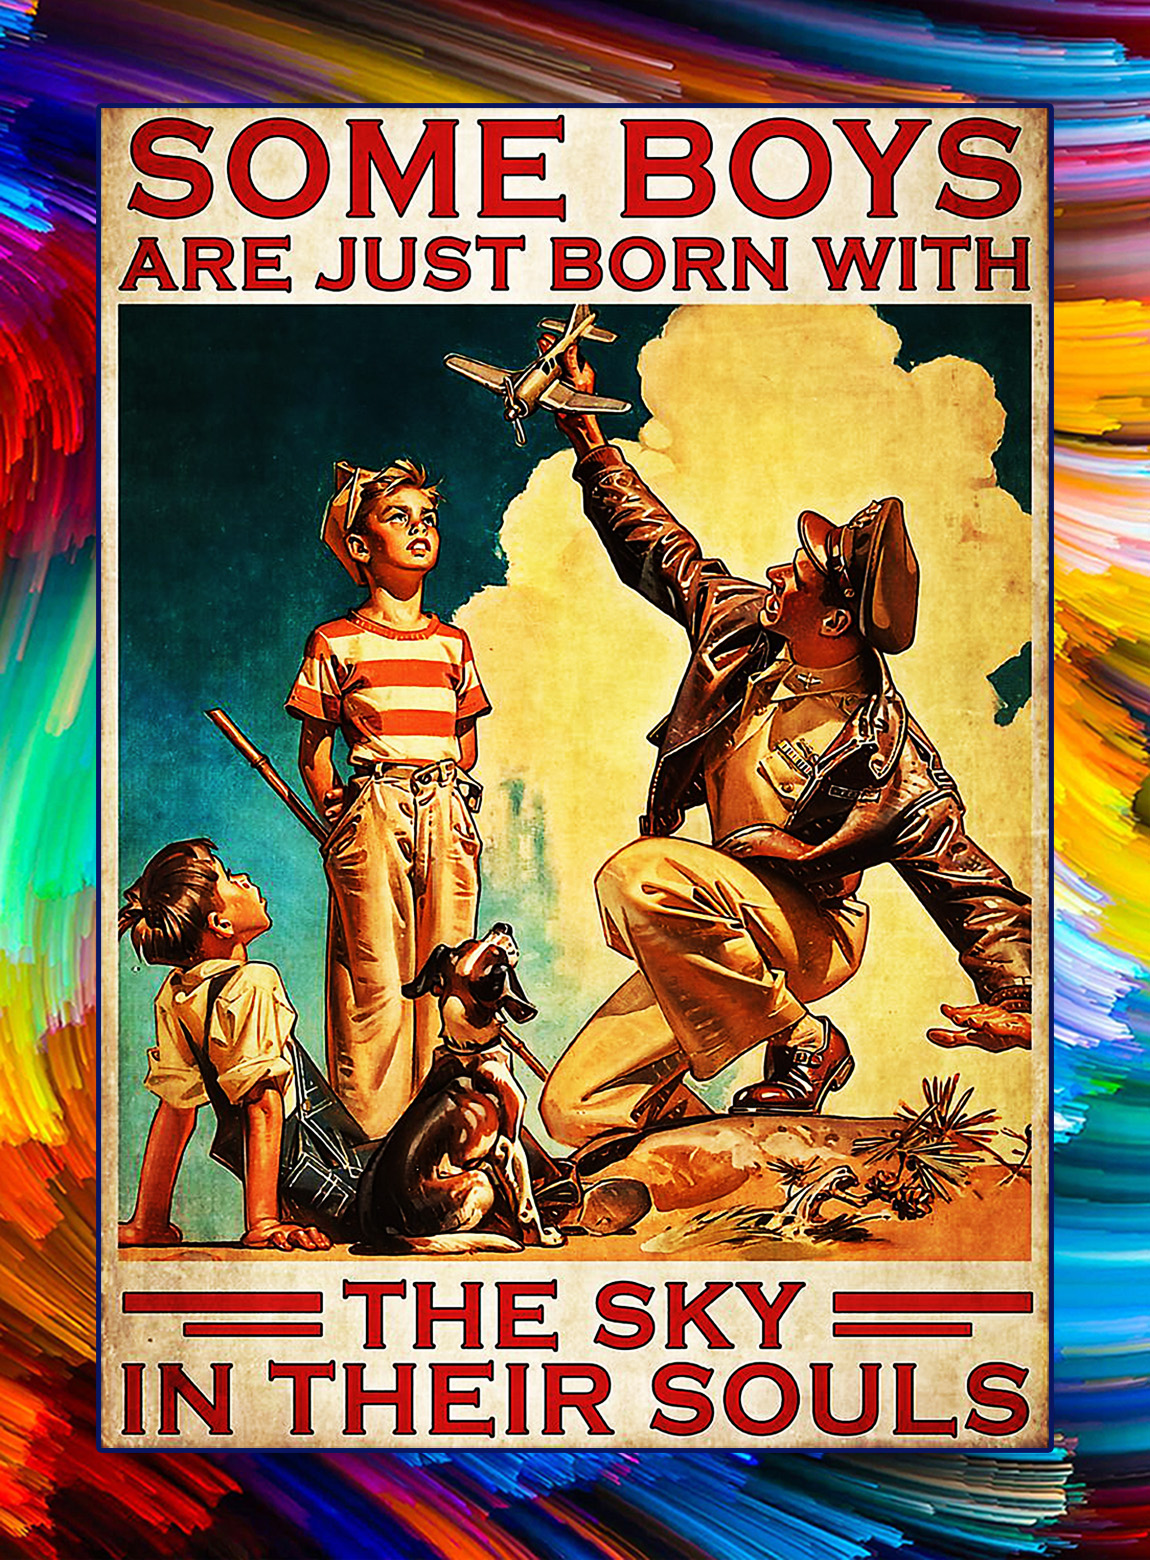 SOME BOYS ARE JUST BORN WITH THE SKY IN THEIR SOULS POSTER - A3